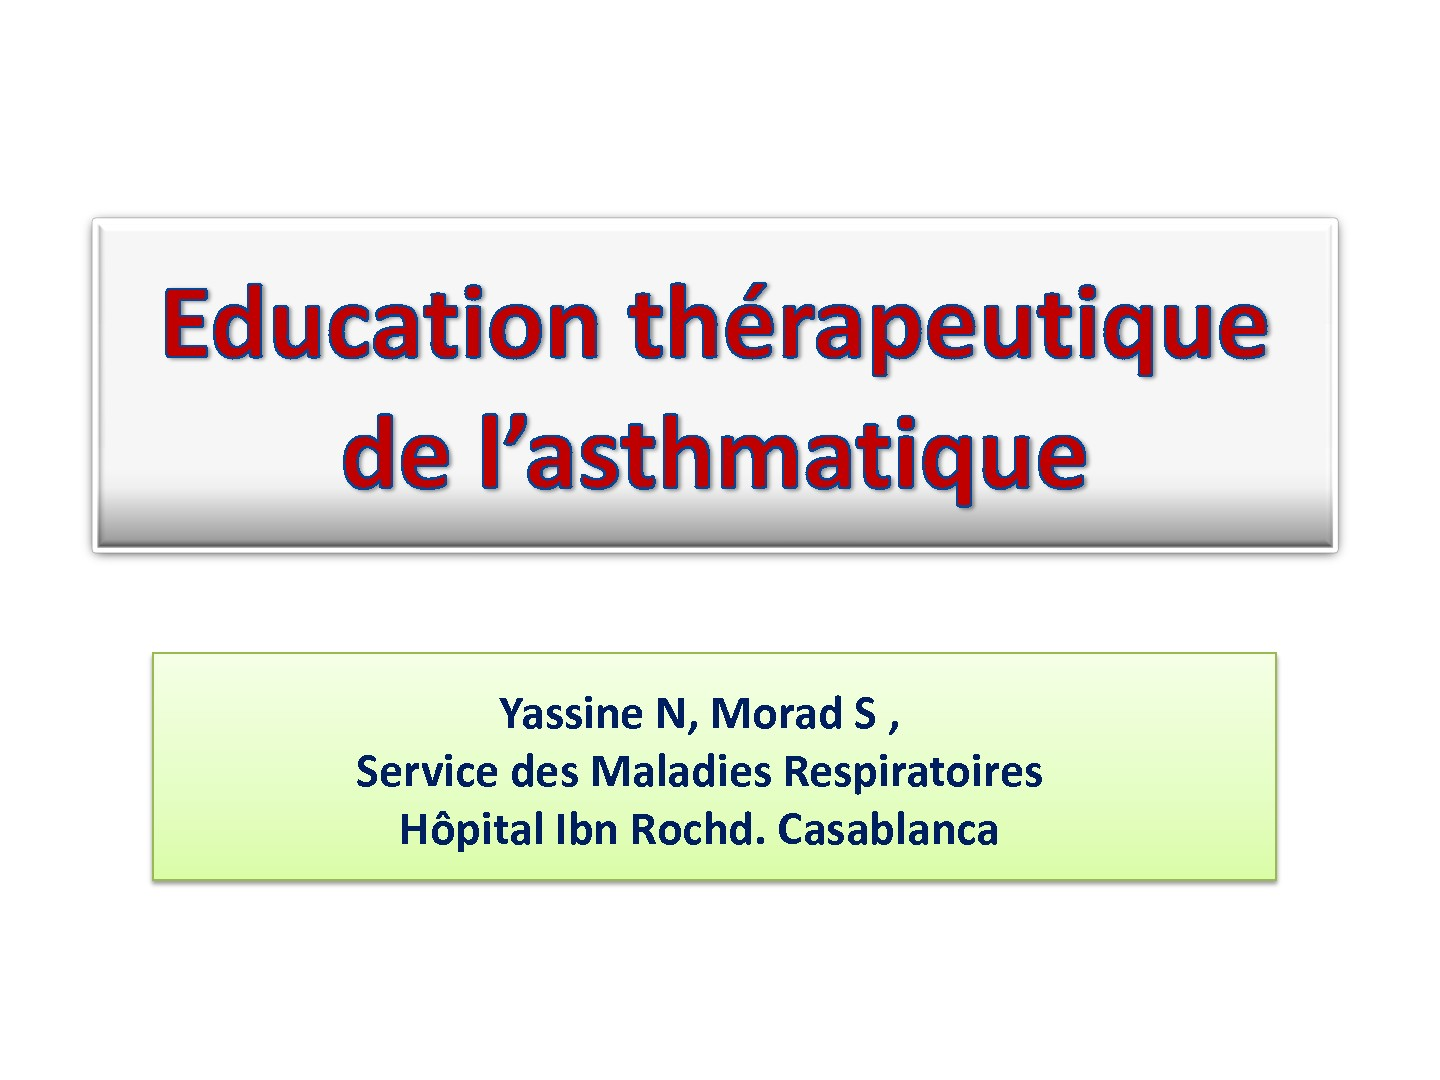 Education de l'asthmatique. N. Yassine, S. Morad